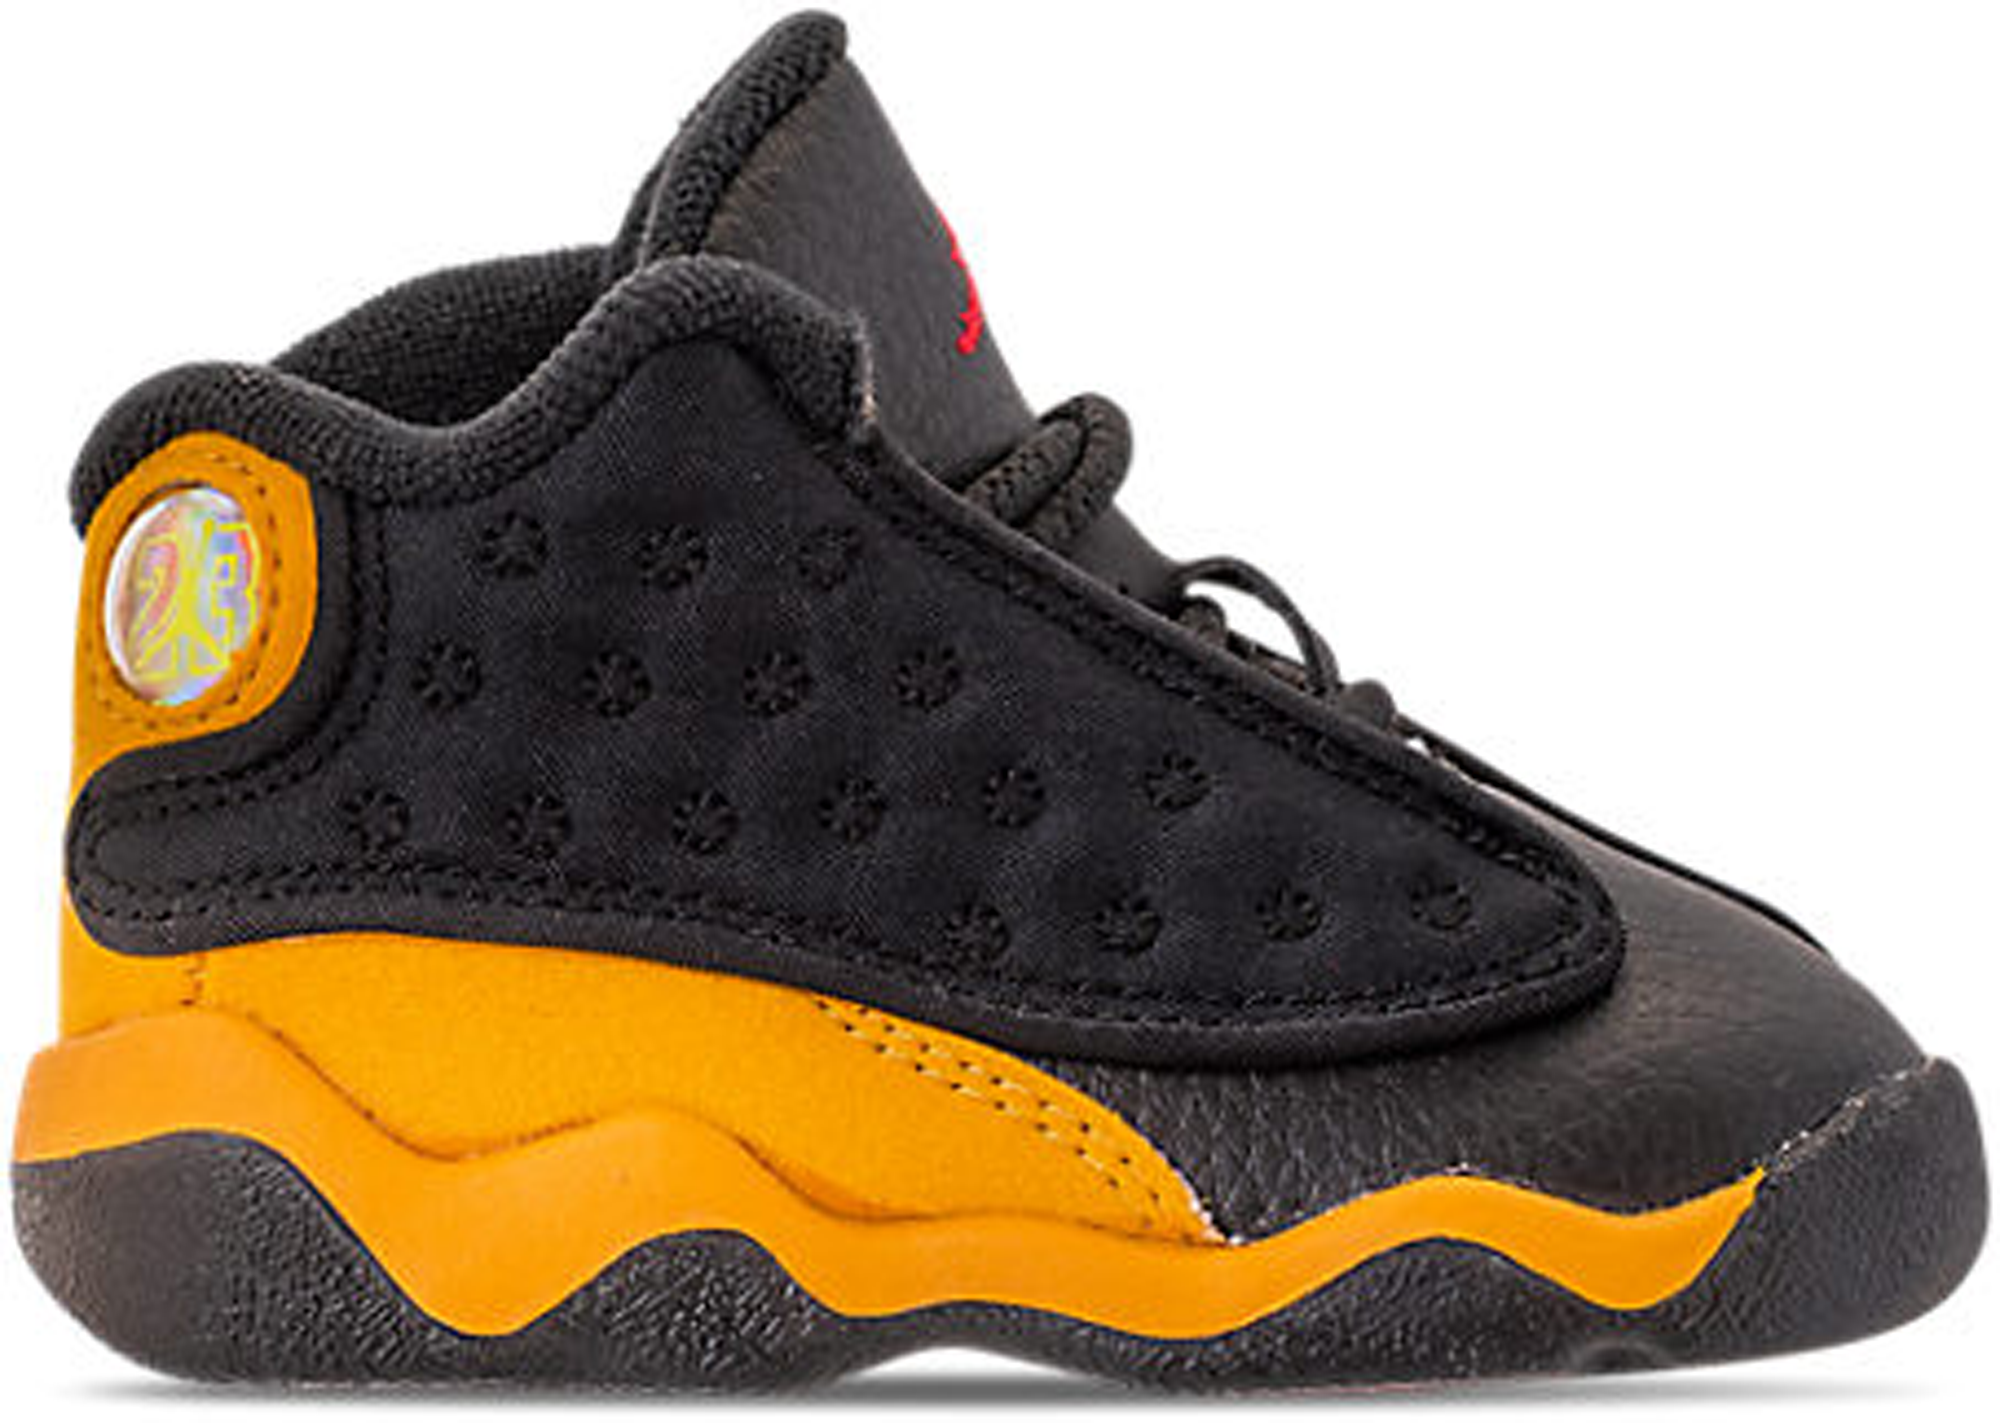 29c037eef08b61 spain jordan 13 black yellow carmelo anthony 46331 35fd7